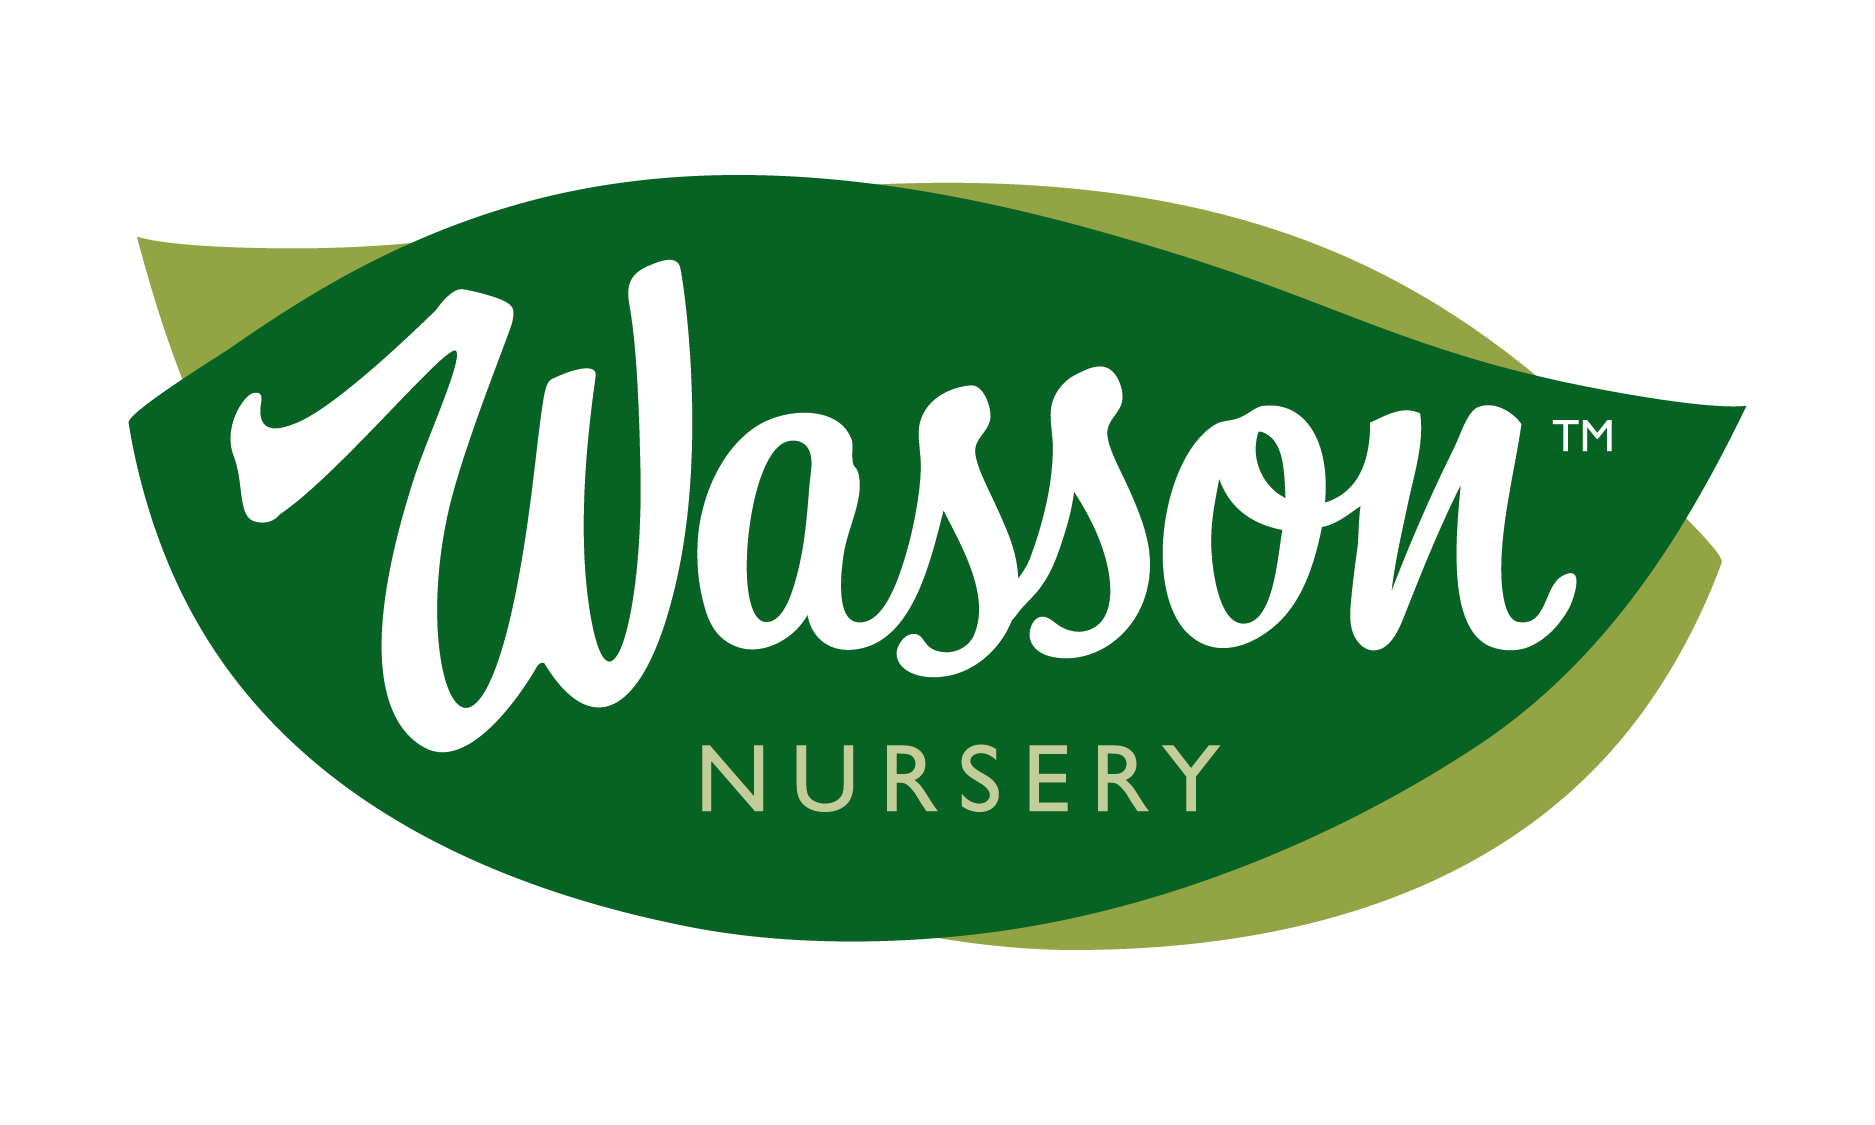 wasson nursery logo